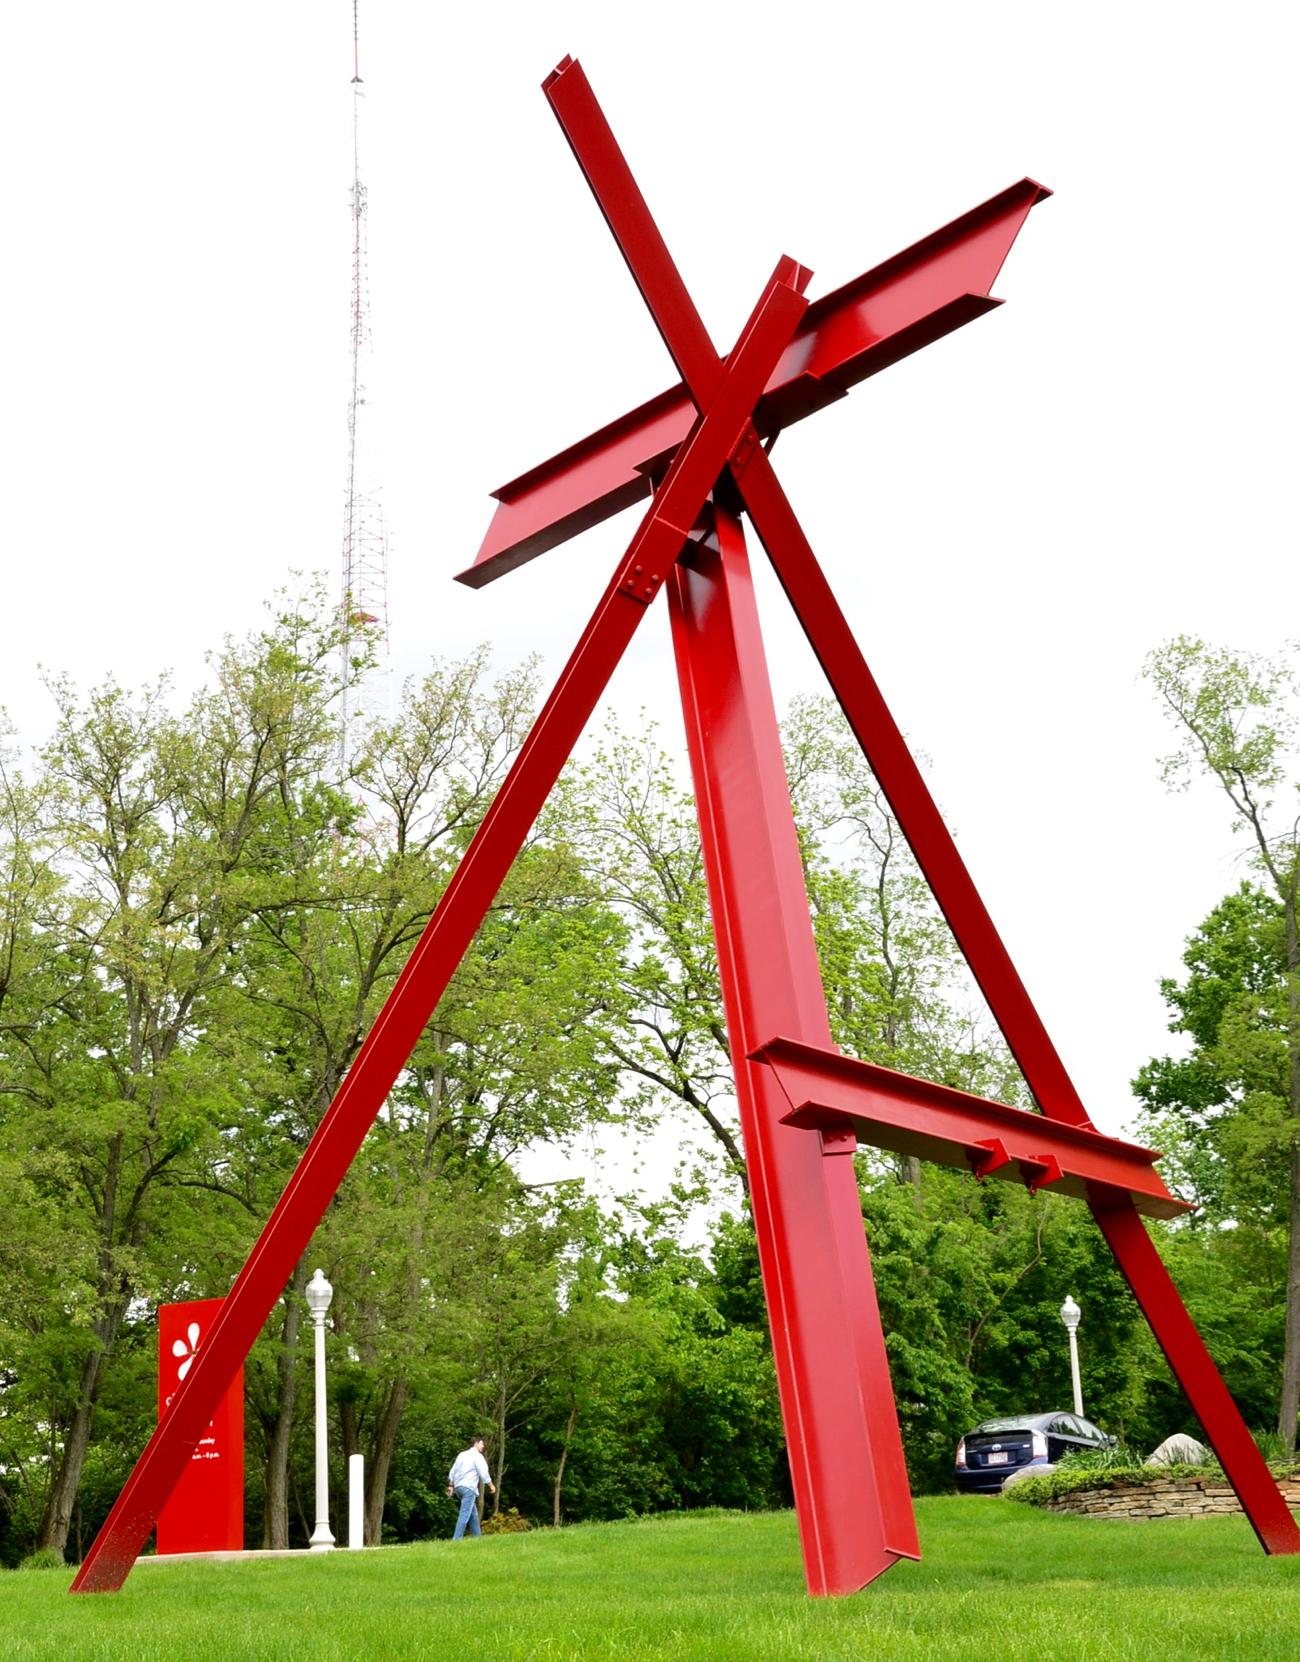 The Atman sculpture (a creation of Mark di Suervo) sits out front of the Cincinnati Art Museum. It was installed in 1986. / Image: Leah Zipperstein, Cincinnati Refined / Info sourced from cincinnatiparks.com // Published: 5.13.17